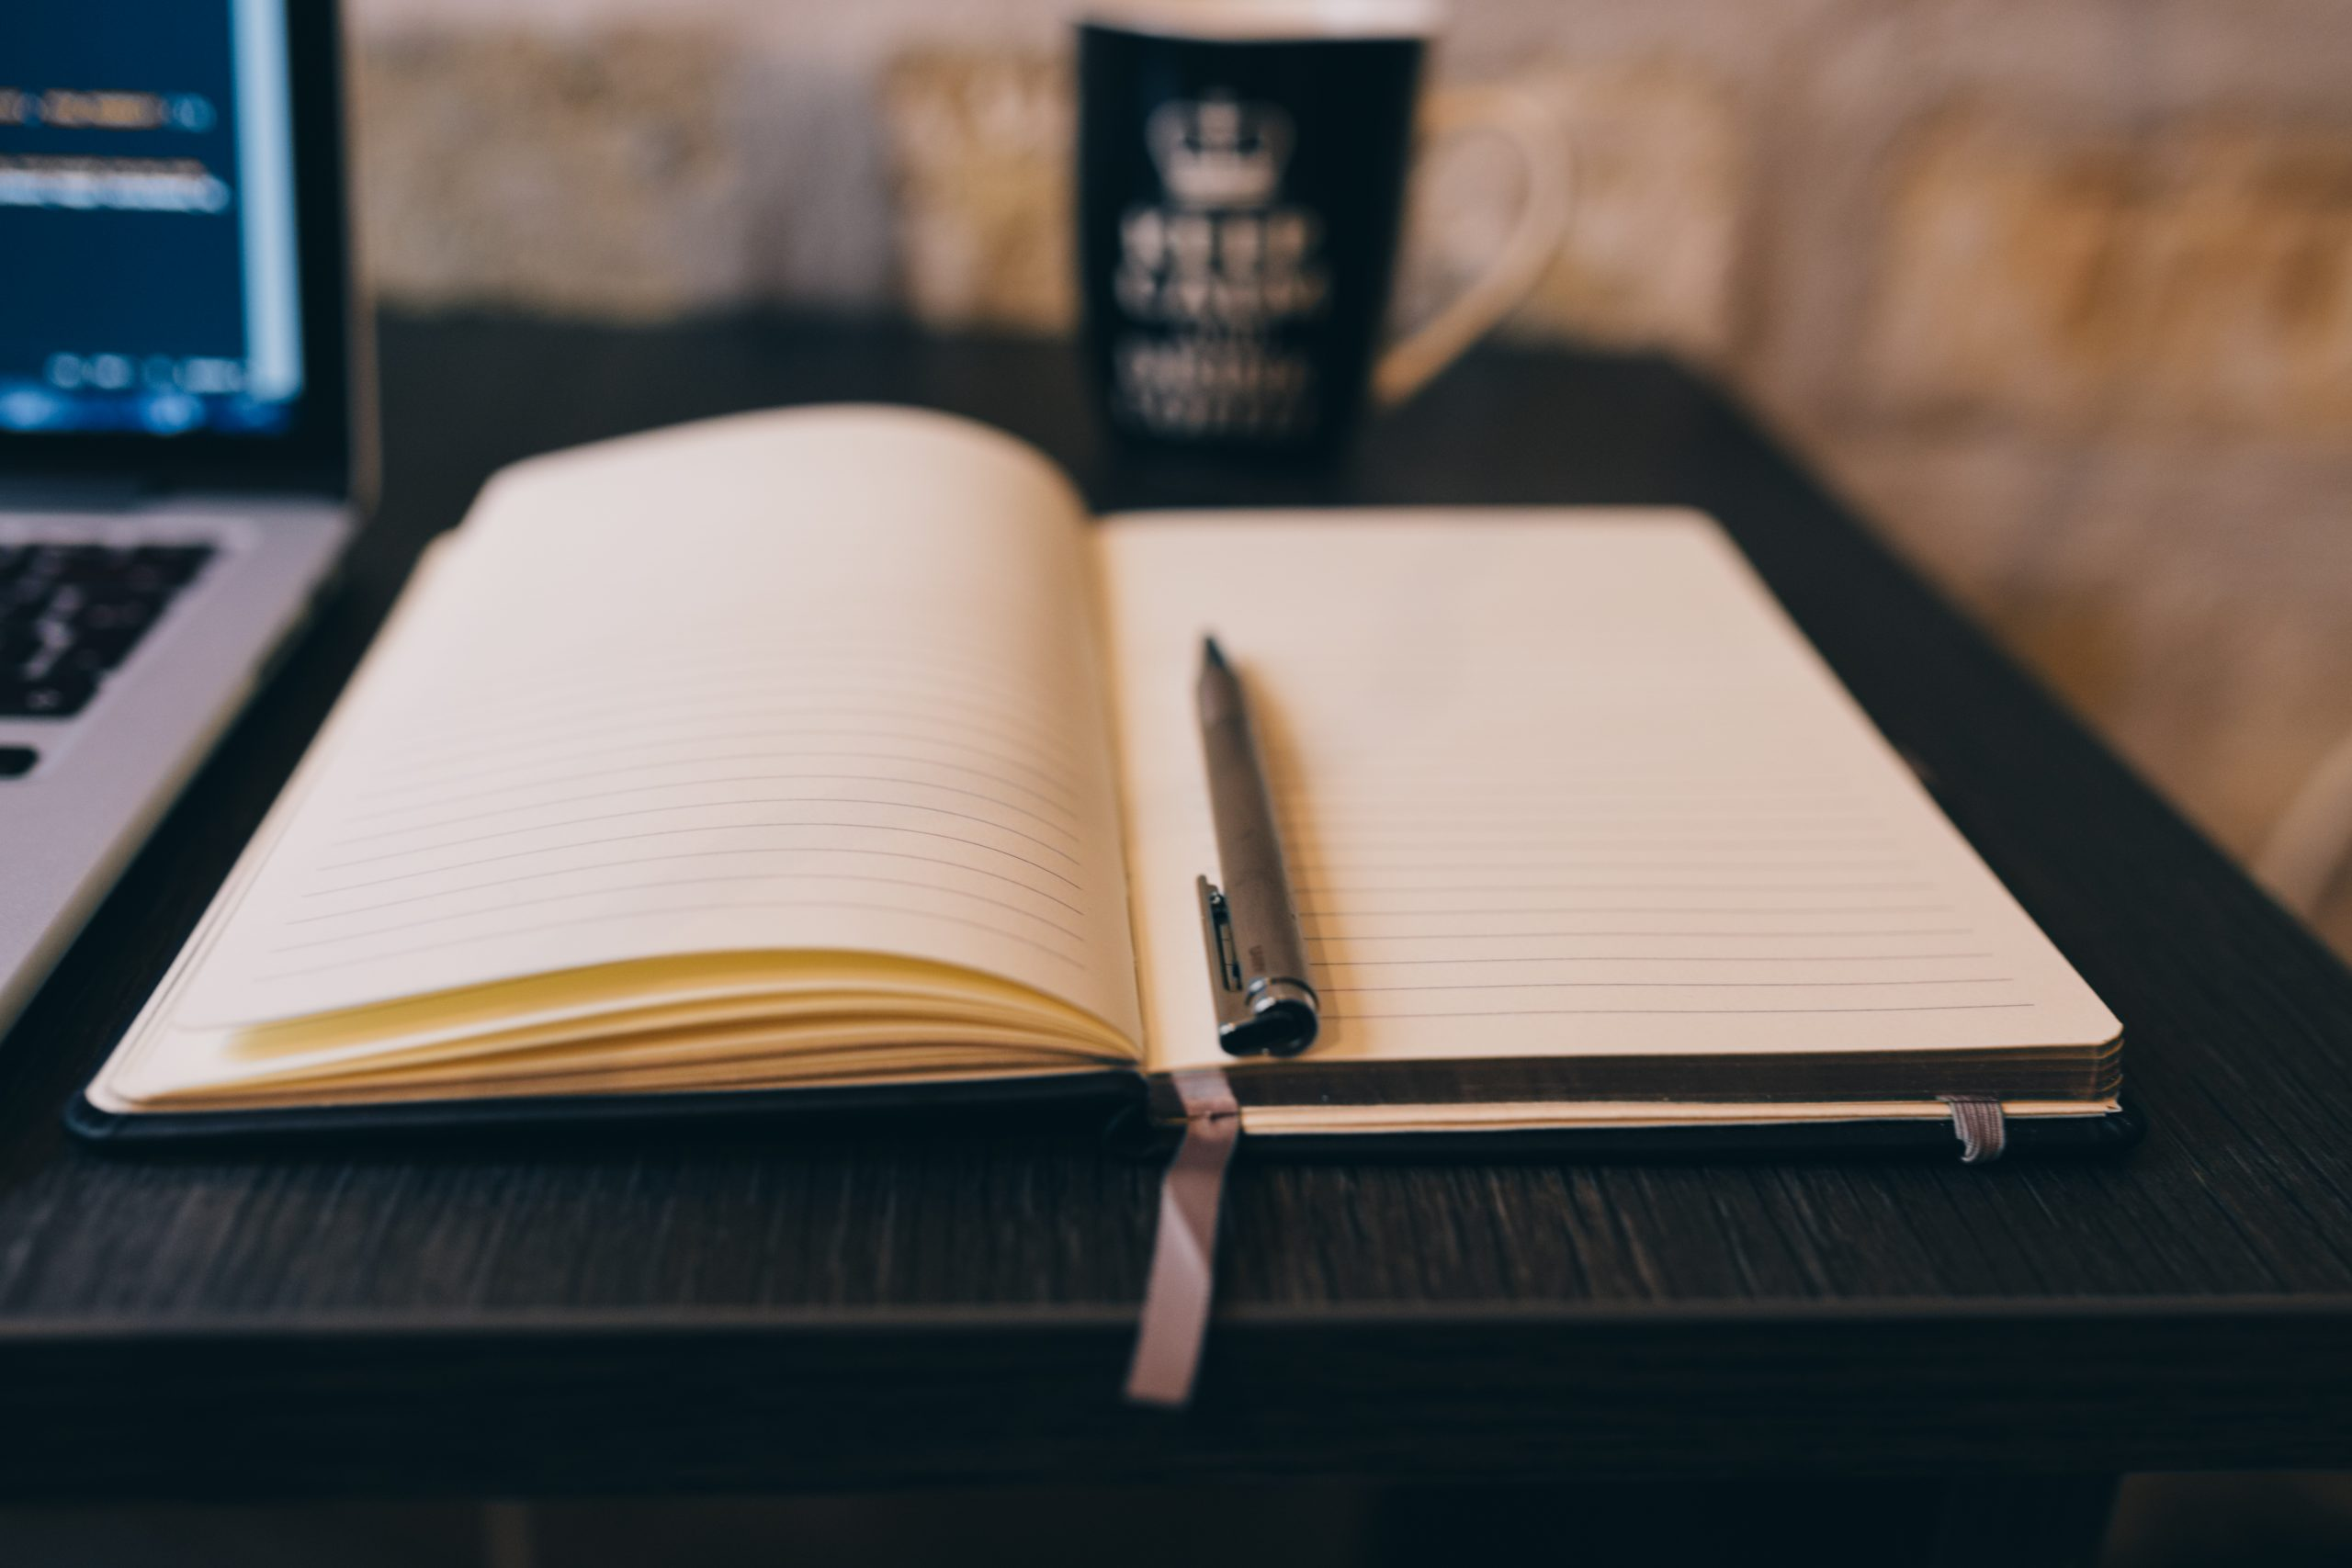 Our 2021 Reading and Writing Resolutions